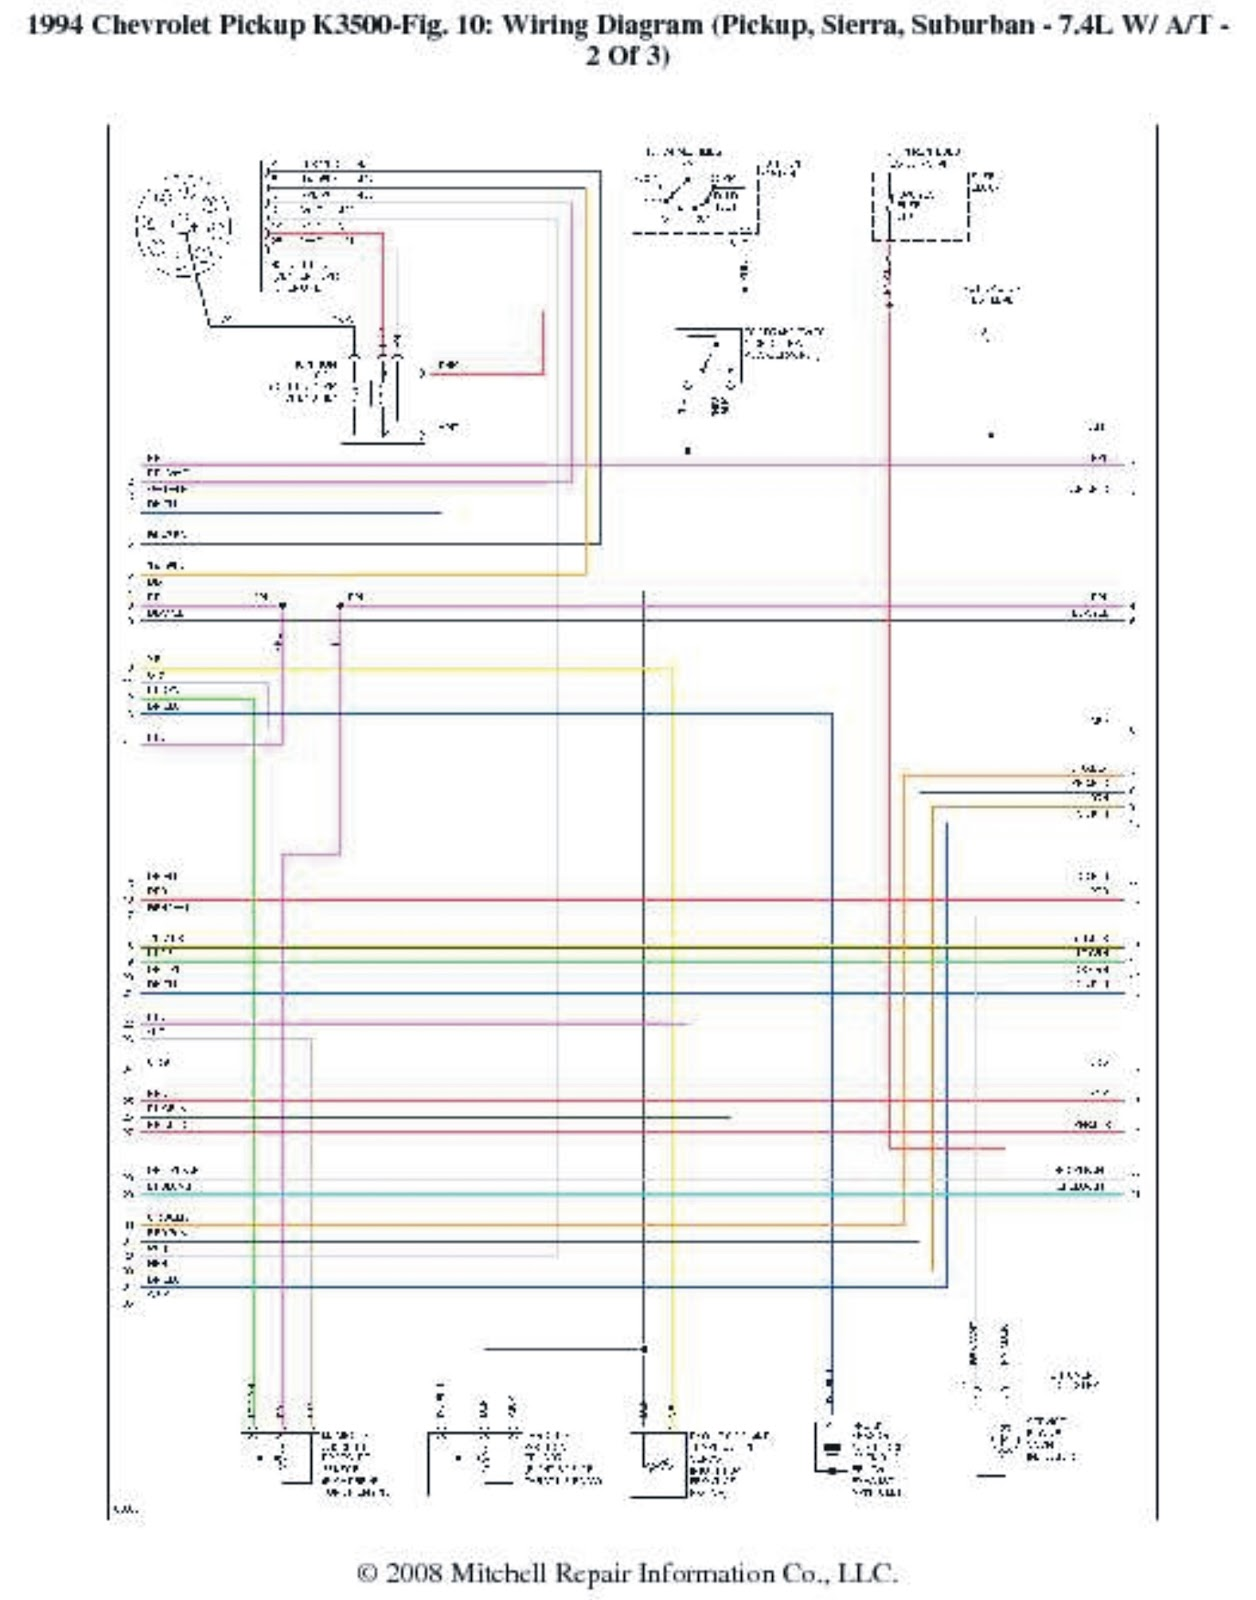 Skoda Fabia 2003 Fuse Box Diagram Wiring Library Chevy Up Nissan 1400 Bakkie Ignition Images